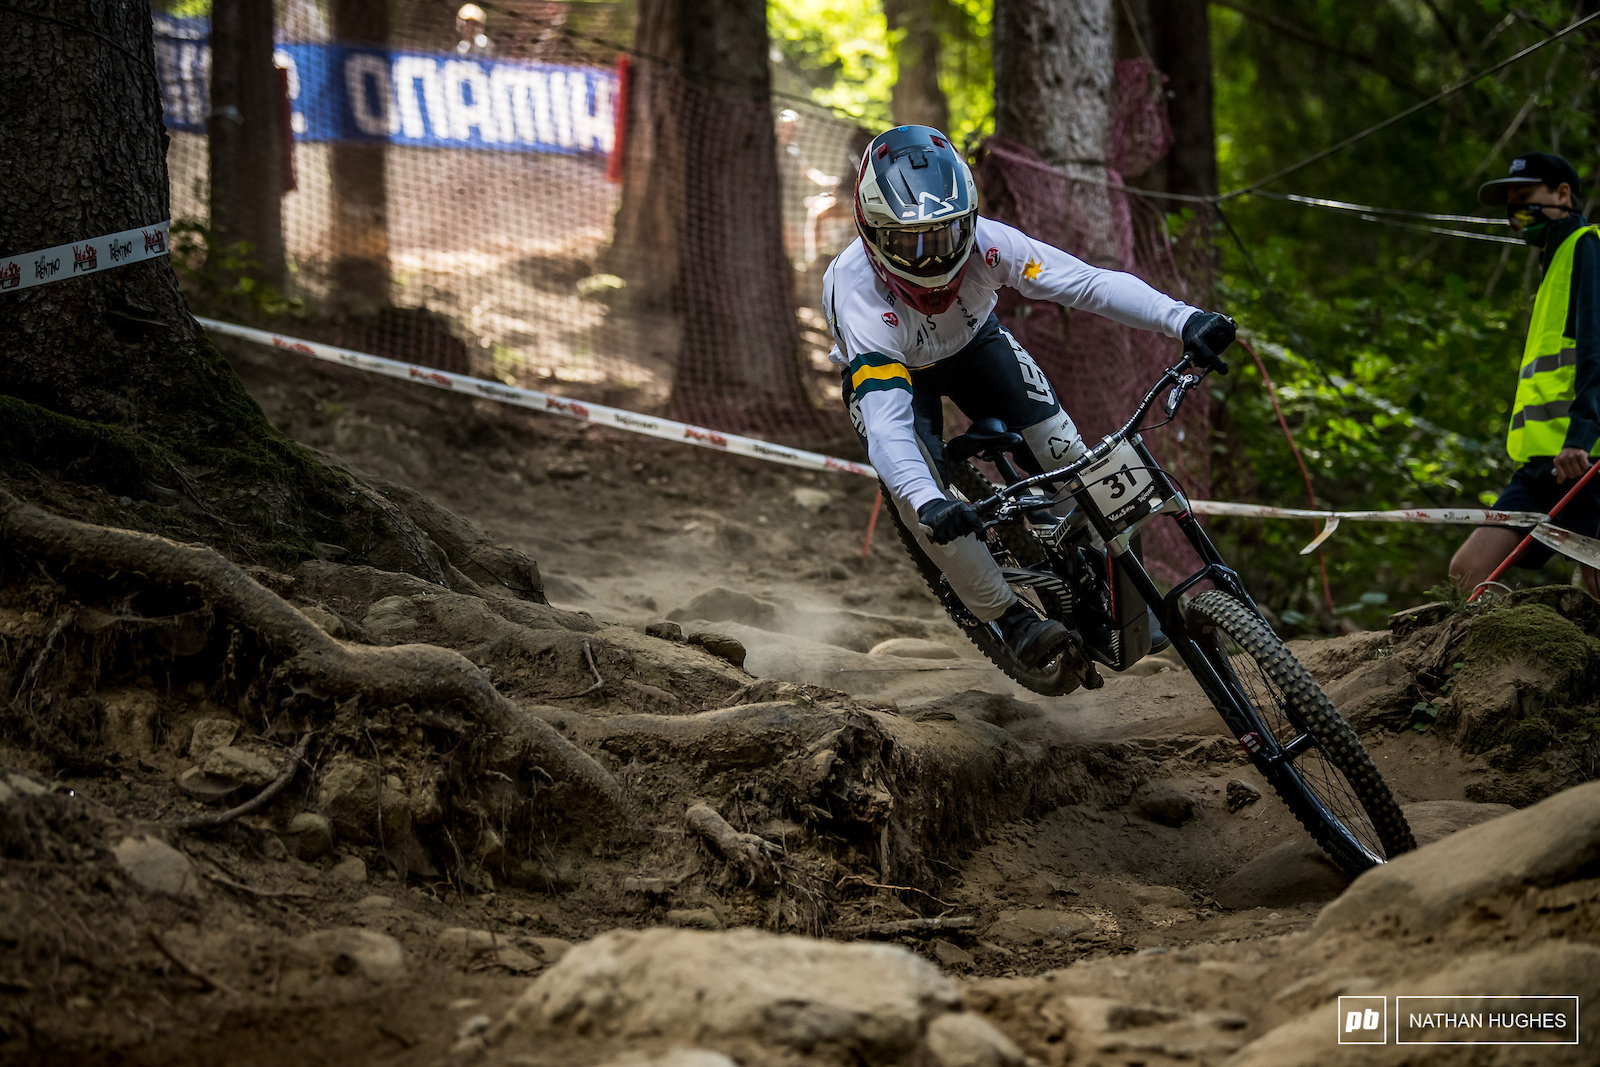 Luke Meyer-Smith continues his rampage between the tape with 13th for qualies.